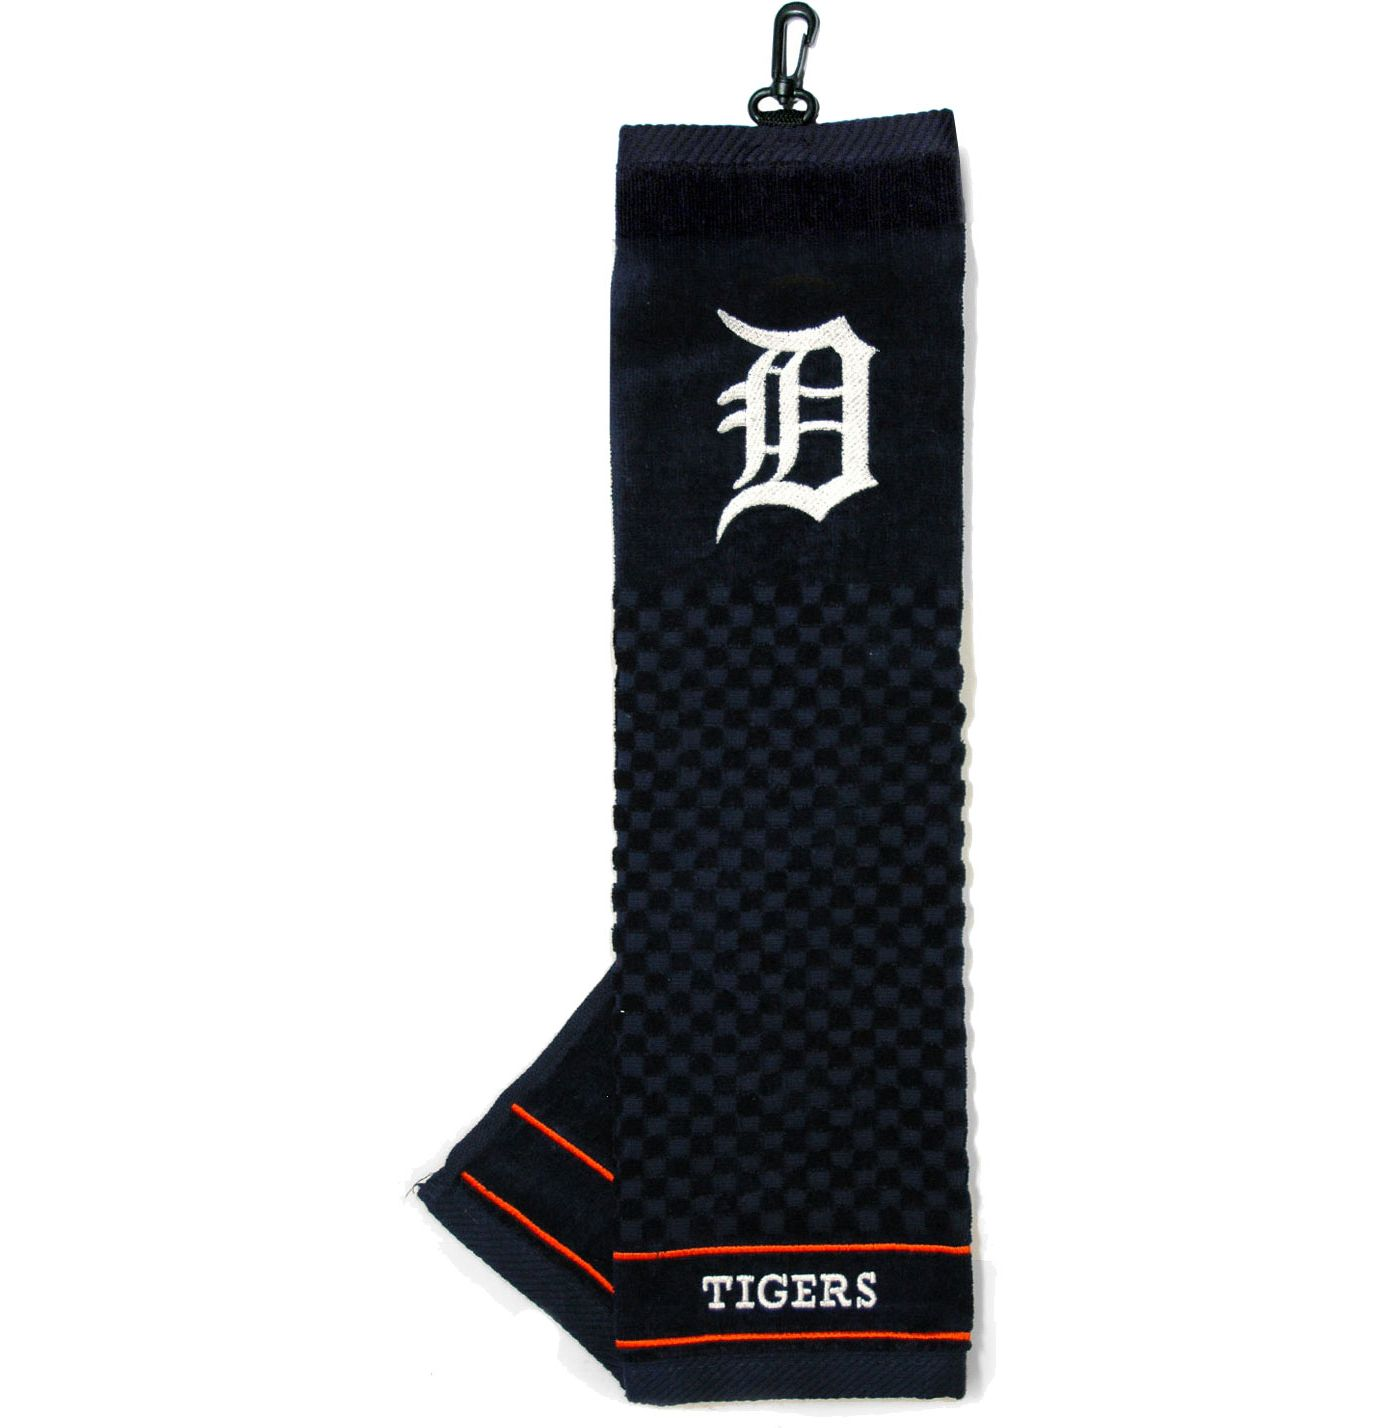 Team Golf Detroit Tigers Embroidered Towel